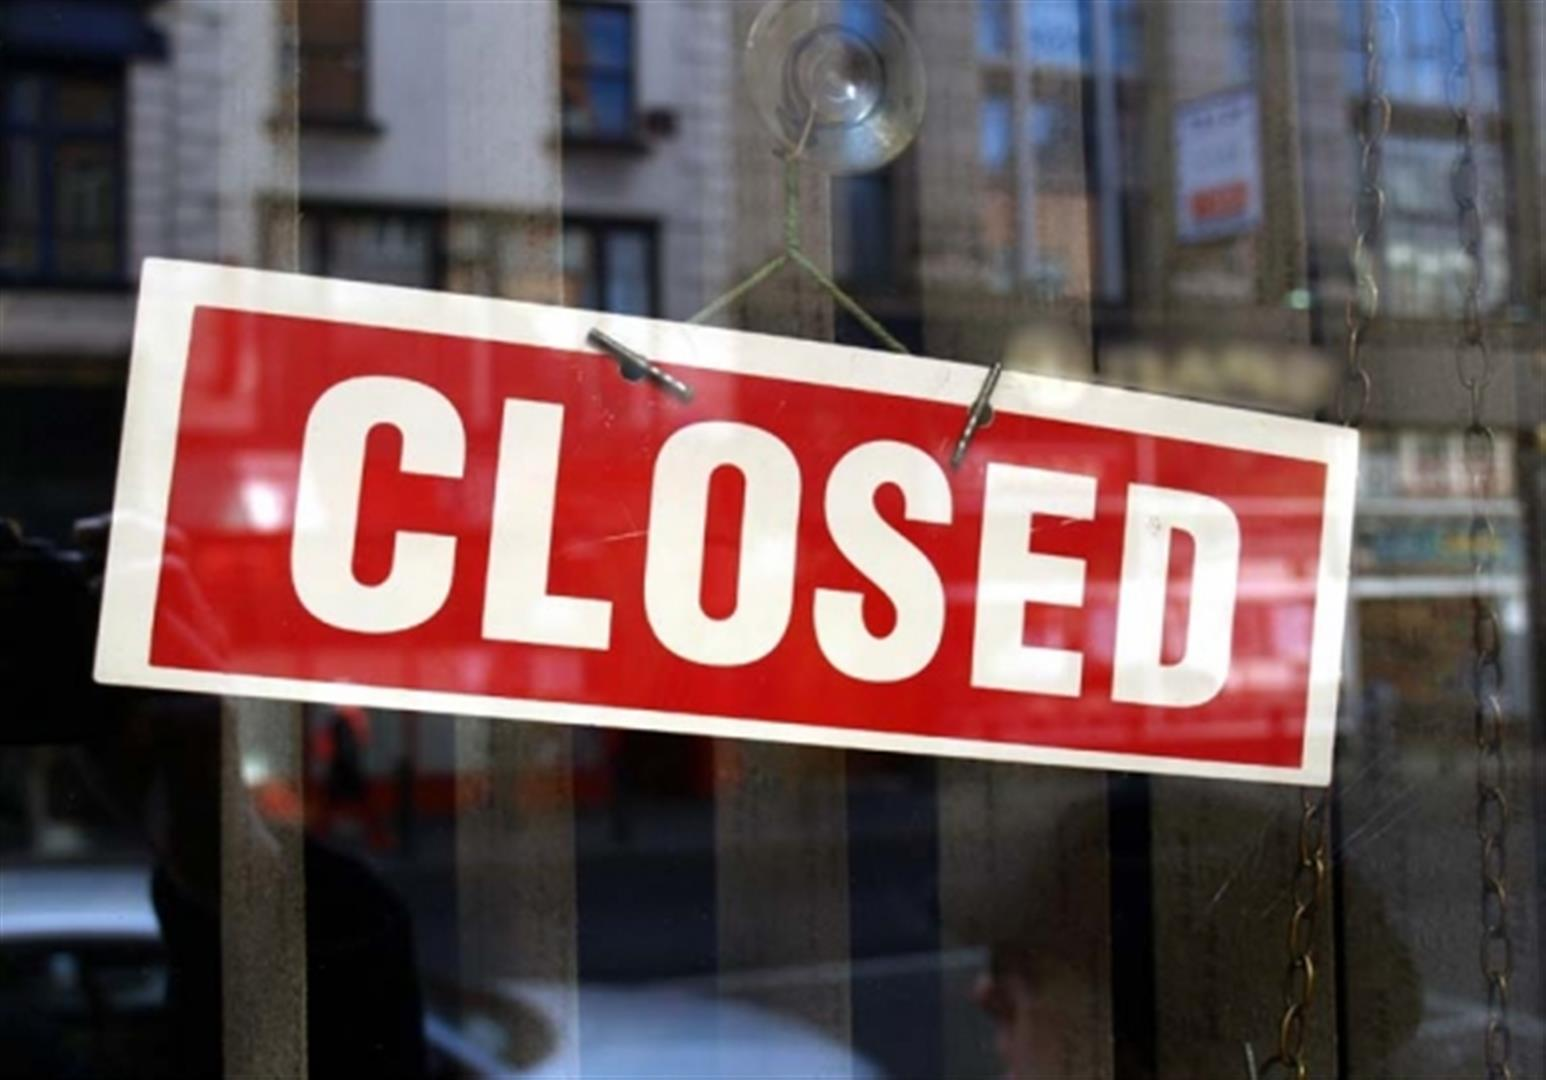 The uMhlanga ckinic will be closed Thursday and Friday this week.